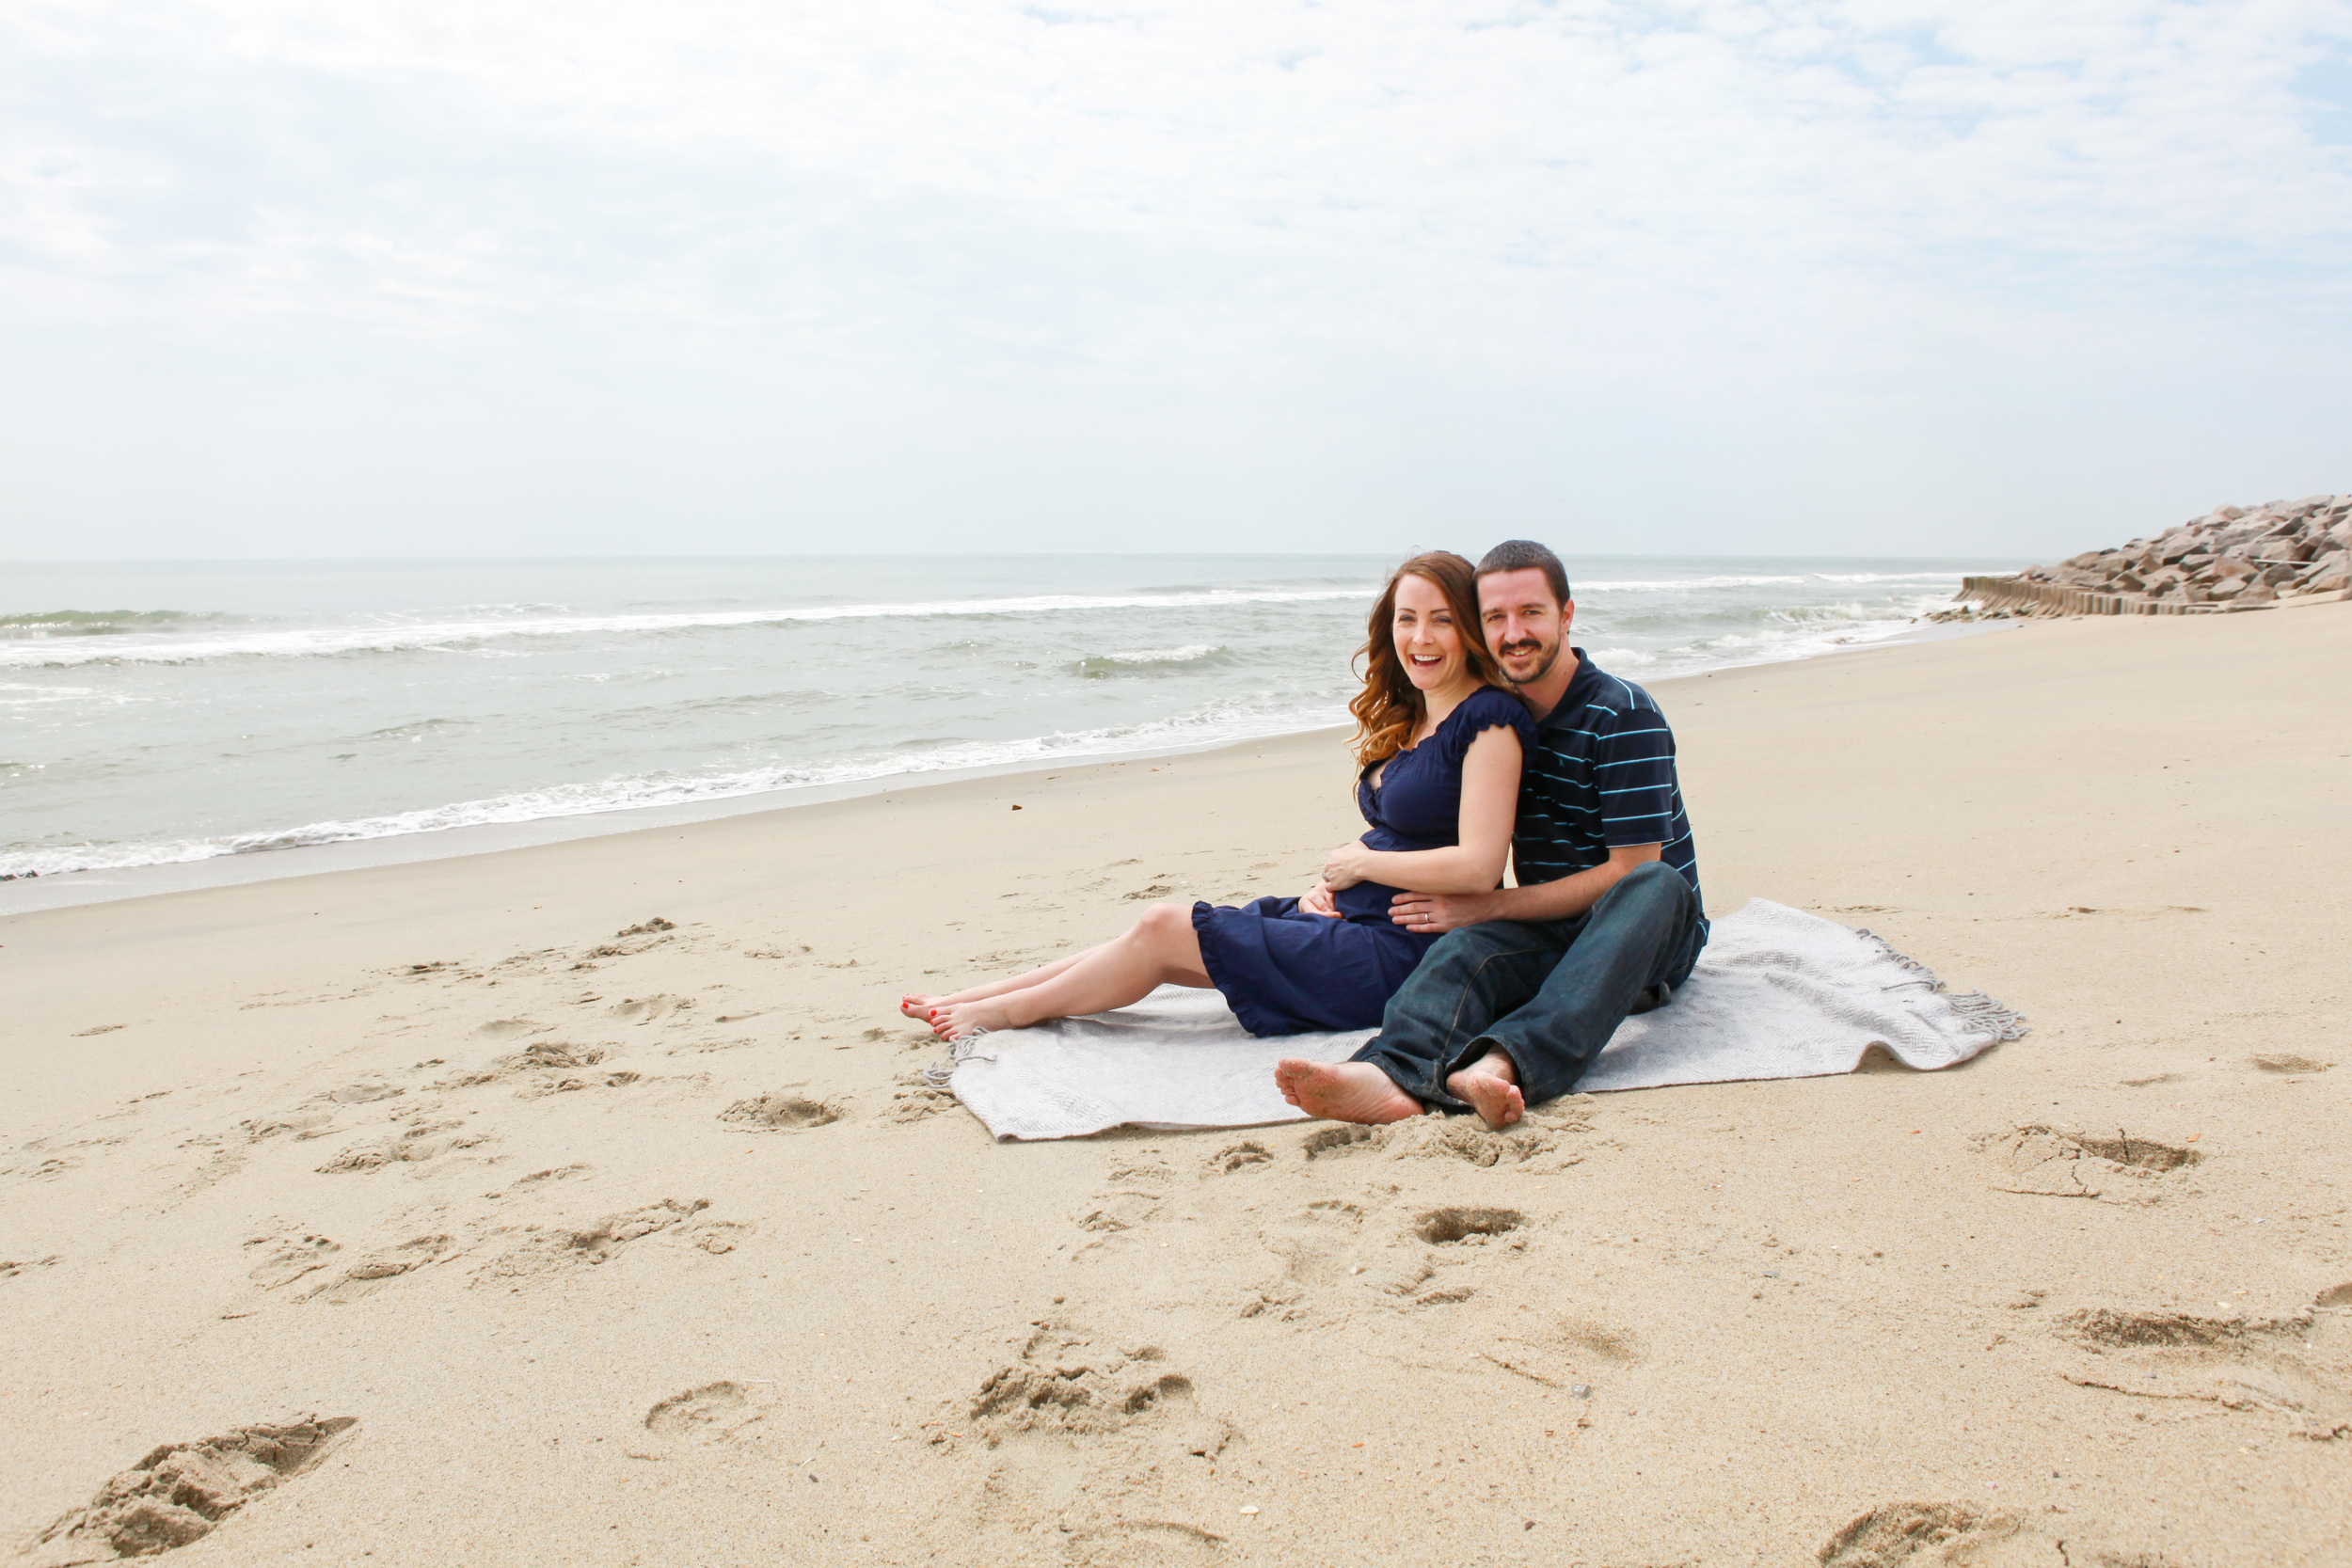 Wilmington_NC_Photographer_Maternity_Fort_fisher_Tiffany_Abruzzo_Photography_5.jpg